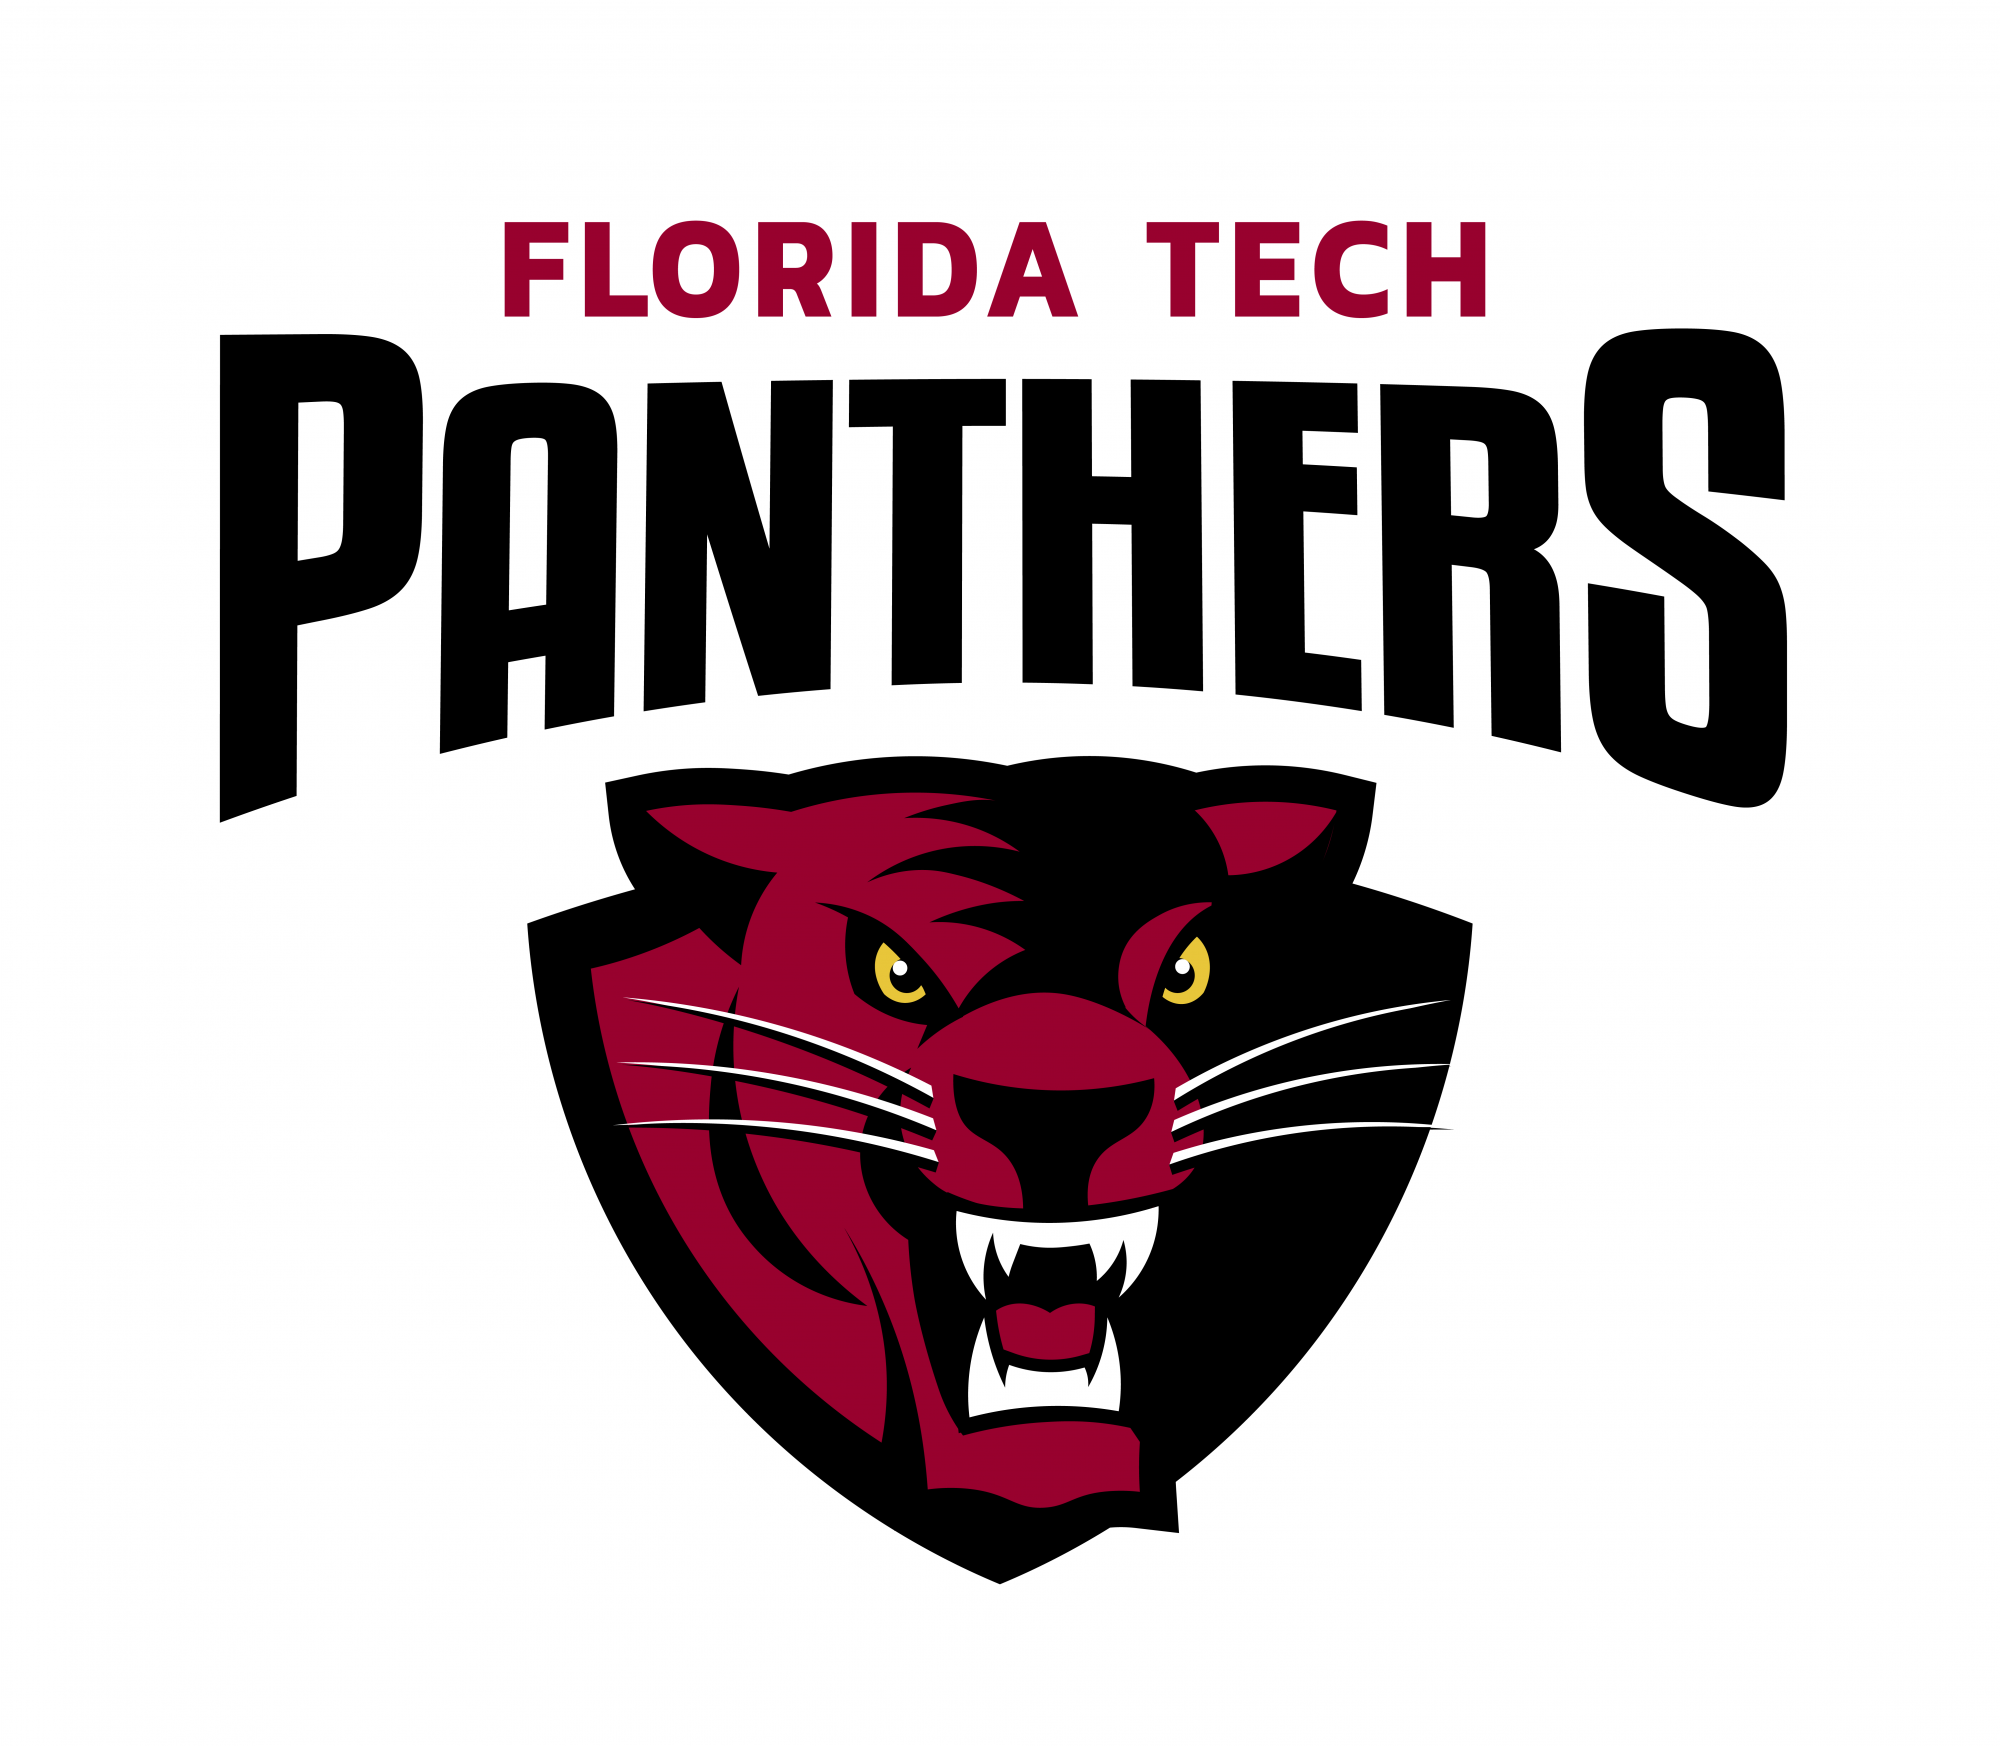 Florida Tech Panthers Brands Of The World Download Vector Logos And Logotypes